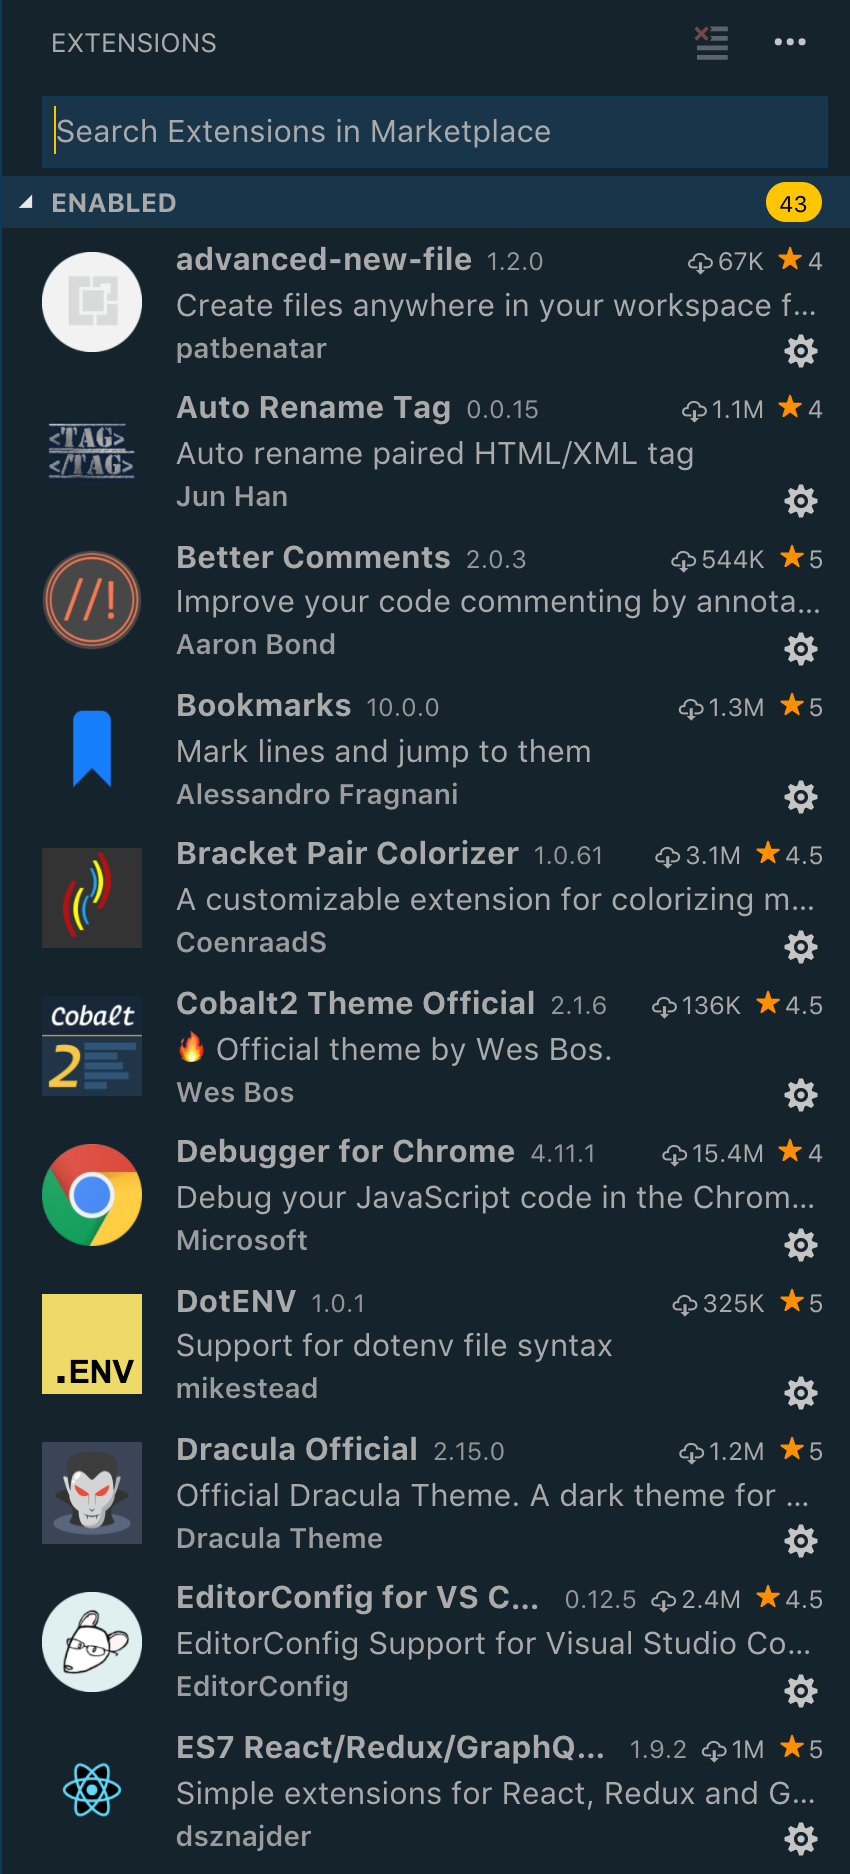 Author's extensions inlcuding advanced-new-file, auto rename tag, better comments, bookmarks, bracket pair colorizer, cobalt2 theme official, debugger for chrome, dotenv, dracula official, editorconfig for VS Code, ES7 React/Redux/GraphQL